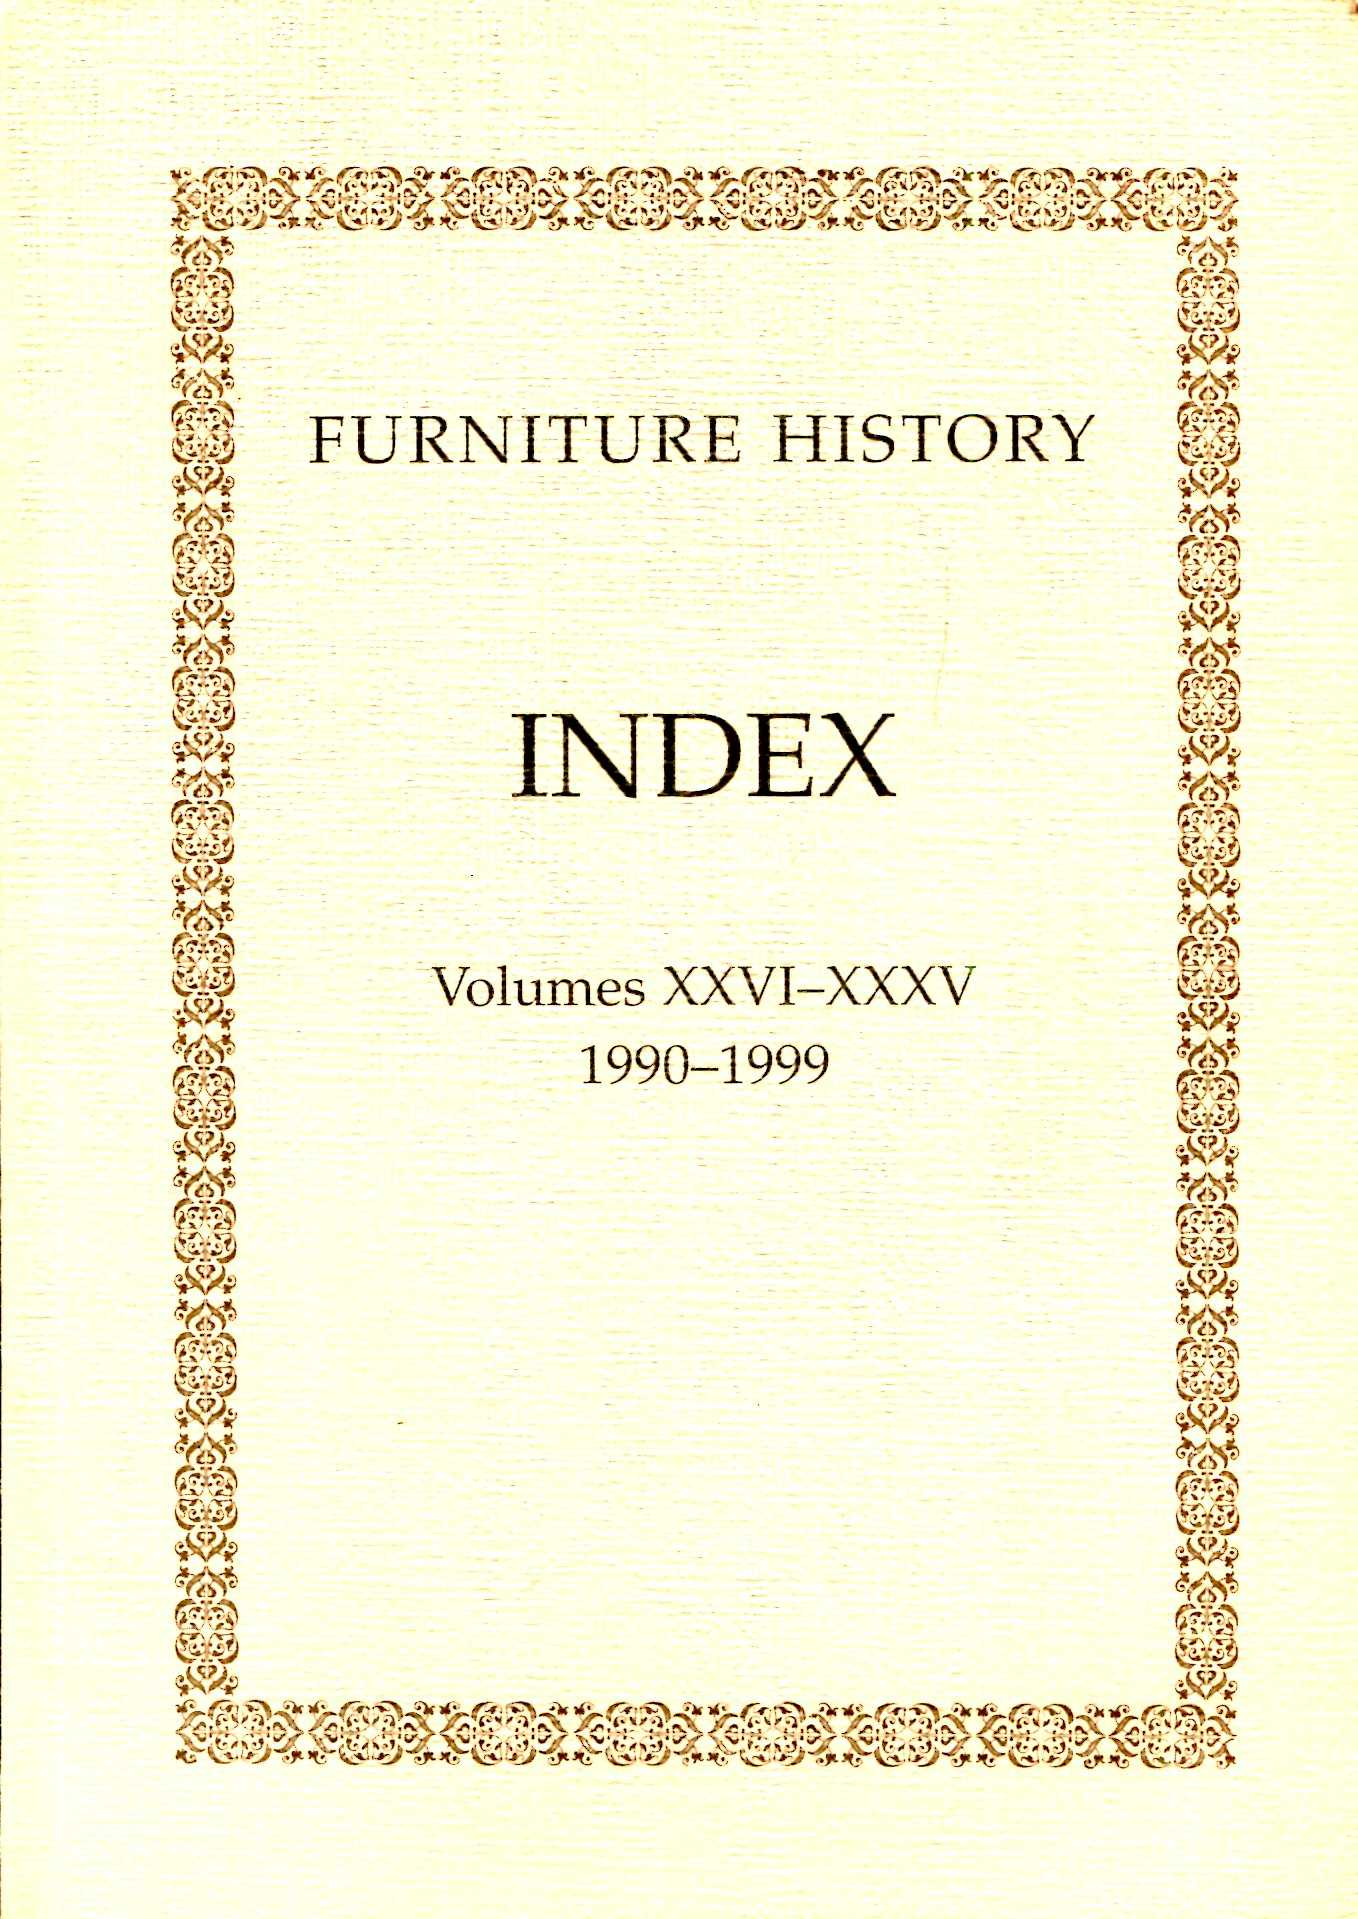 Image for Furniture History : the Journal of the Furniture History Society Index volumes XXVI-XXXV 1990-1999